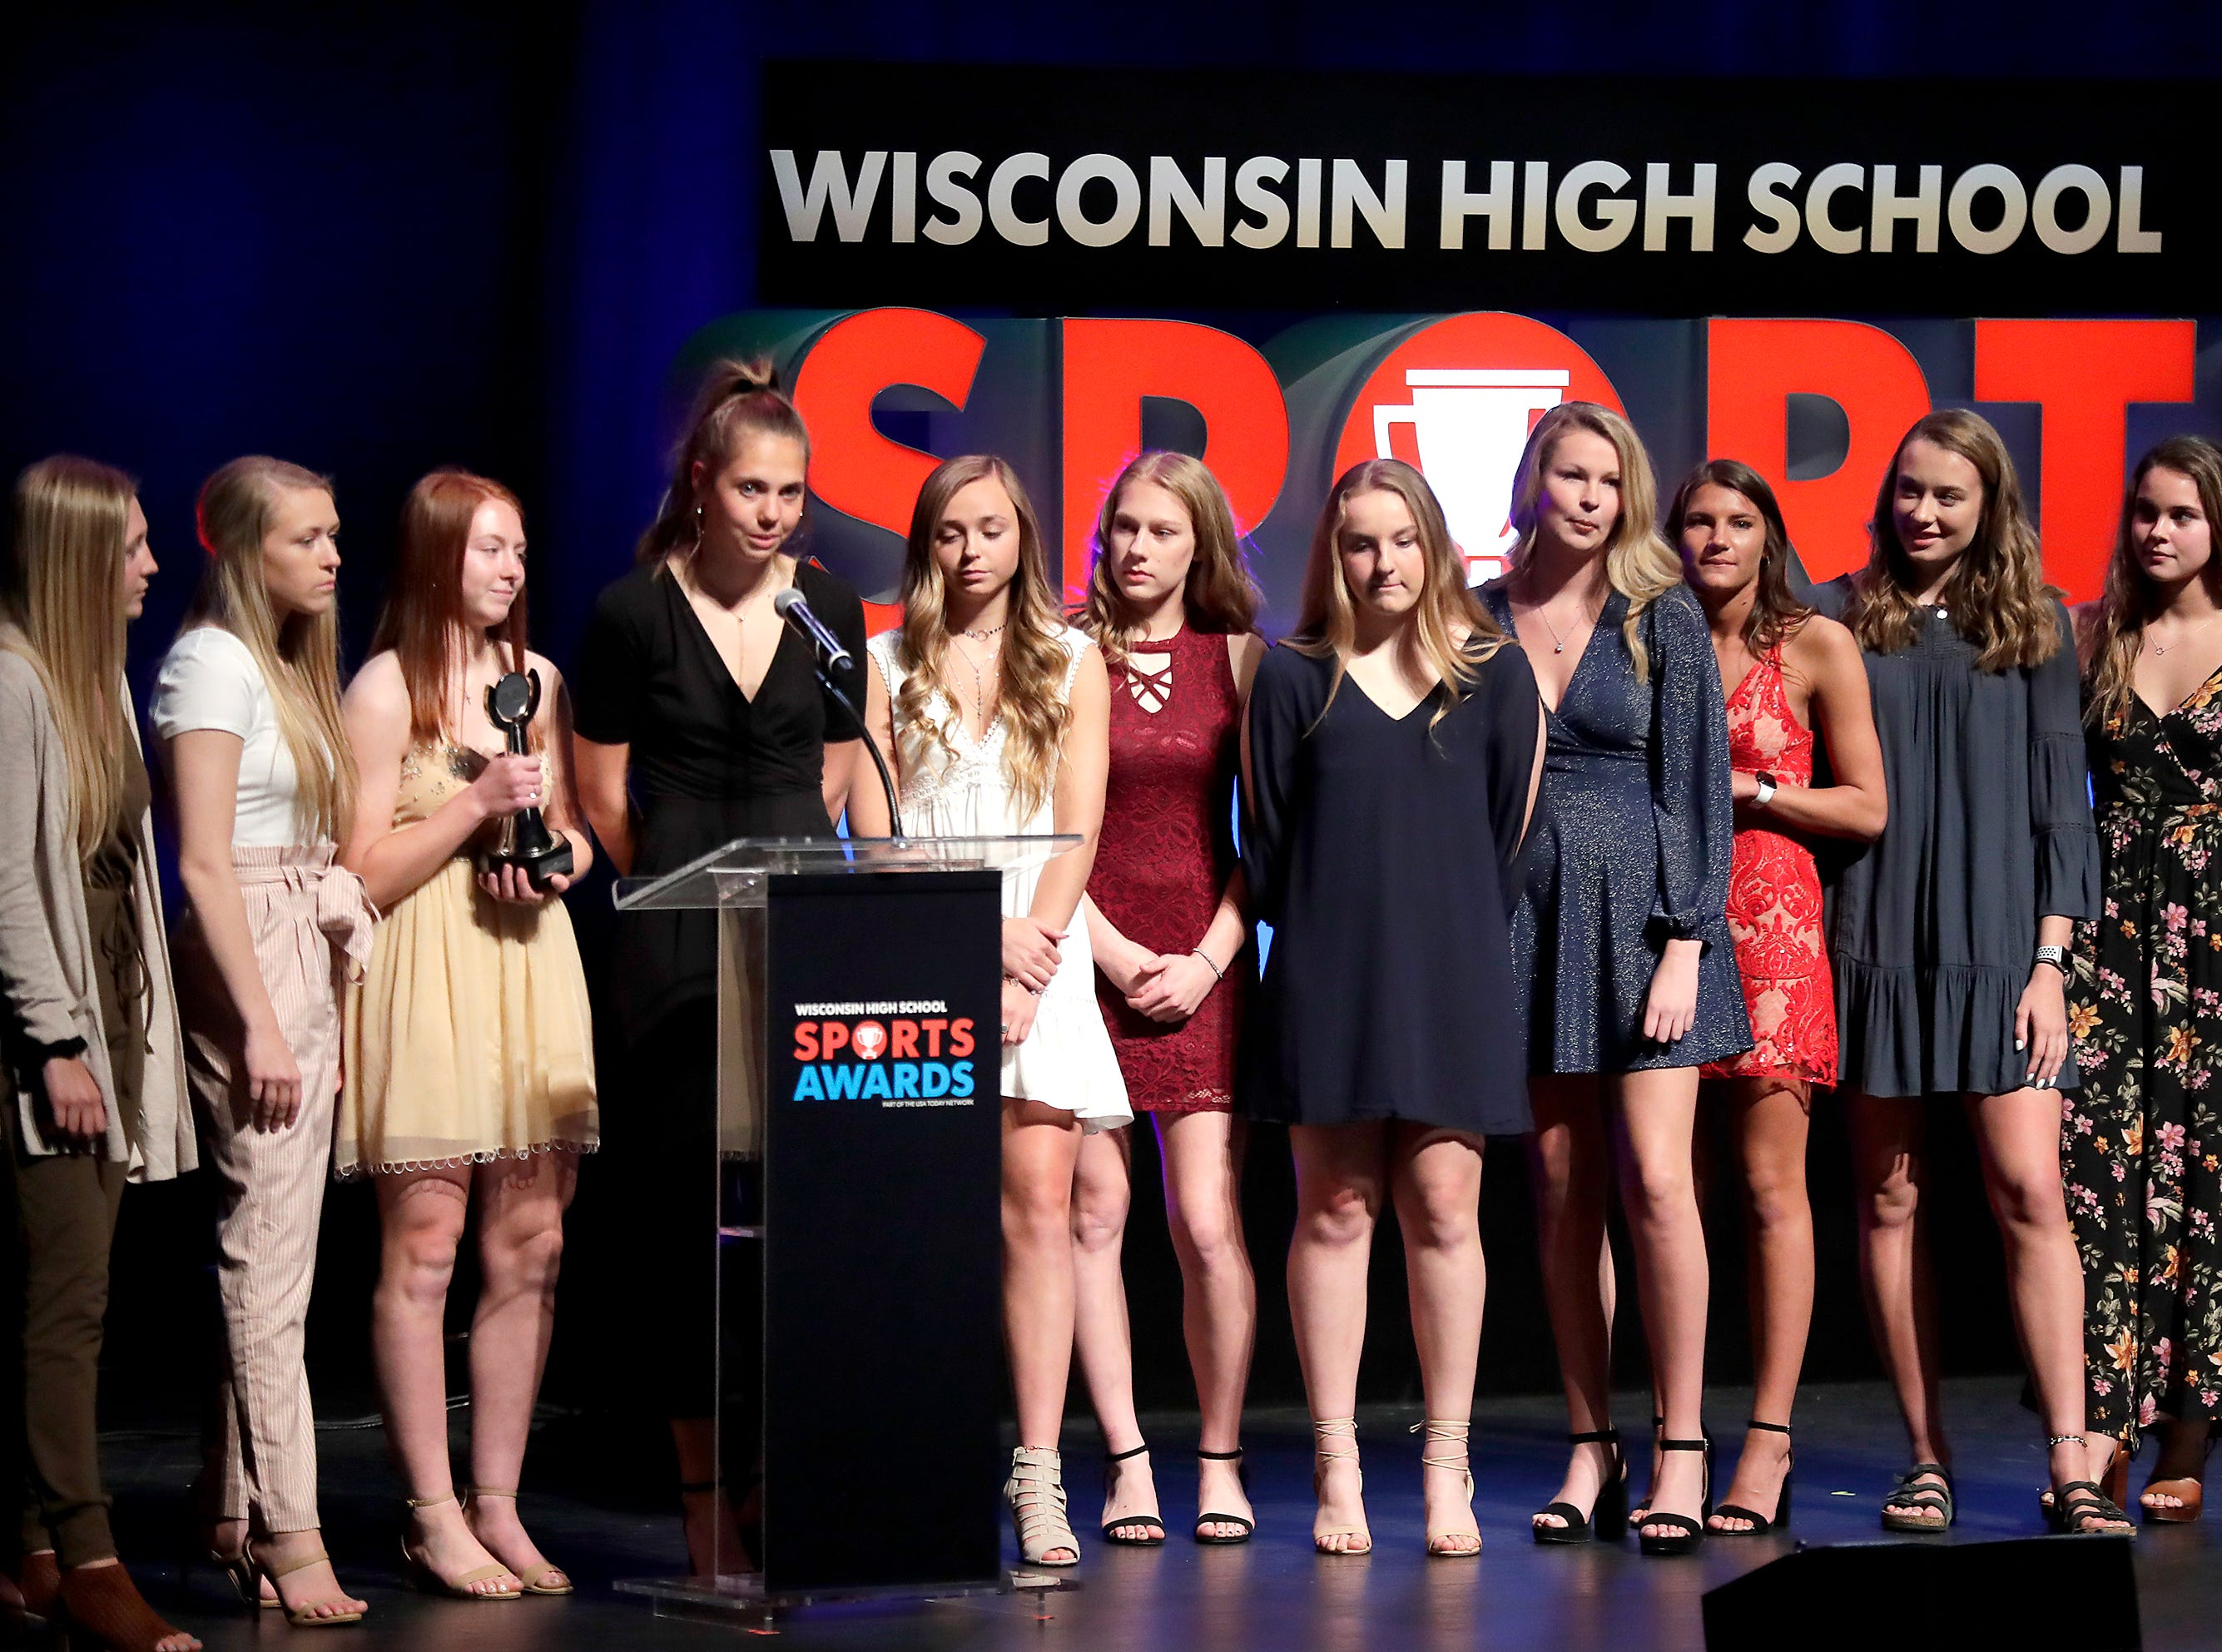 The team of the year, the Bay Port girls basketball team, during the Wisconsin High School Sports Awards show at the Fox Cities Performing Arts Center on Wednesday, May 8, 2019, in Appleton, Wis. Olympic champion Michael Phelps was the guest speaker. The annual event was presented by USA TODAY NETWORK-Wisconsin.  Wm. Glasheen/USA TODAY NETWORK-Wisconsin.